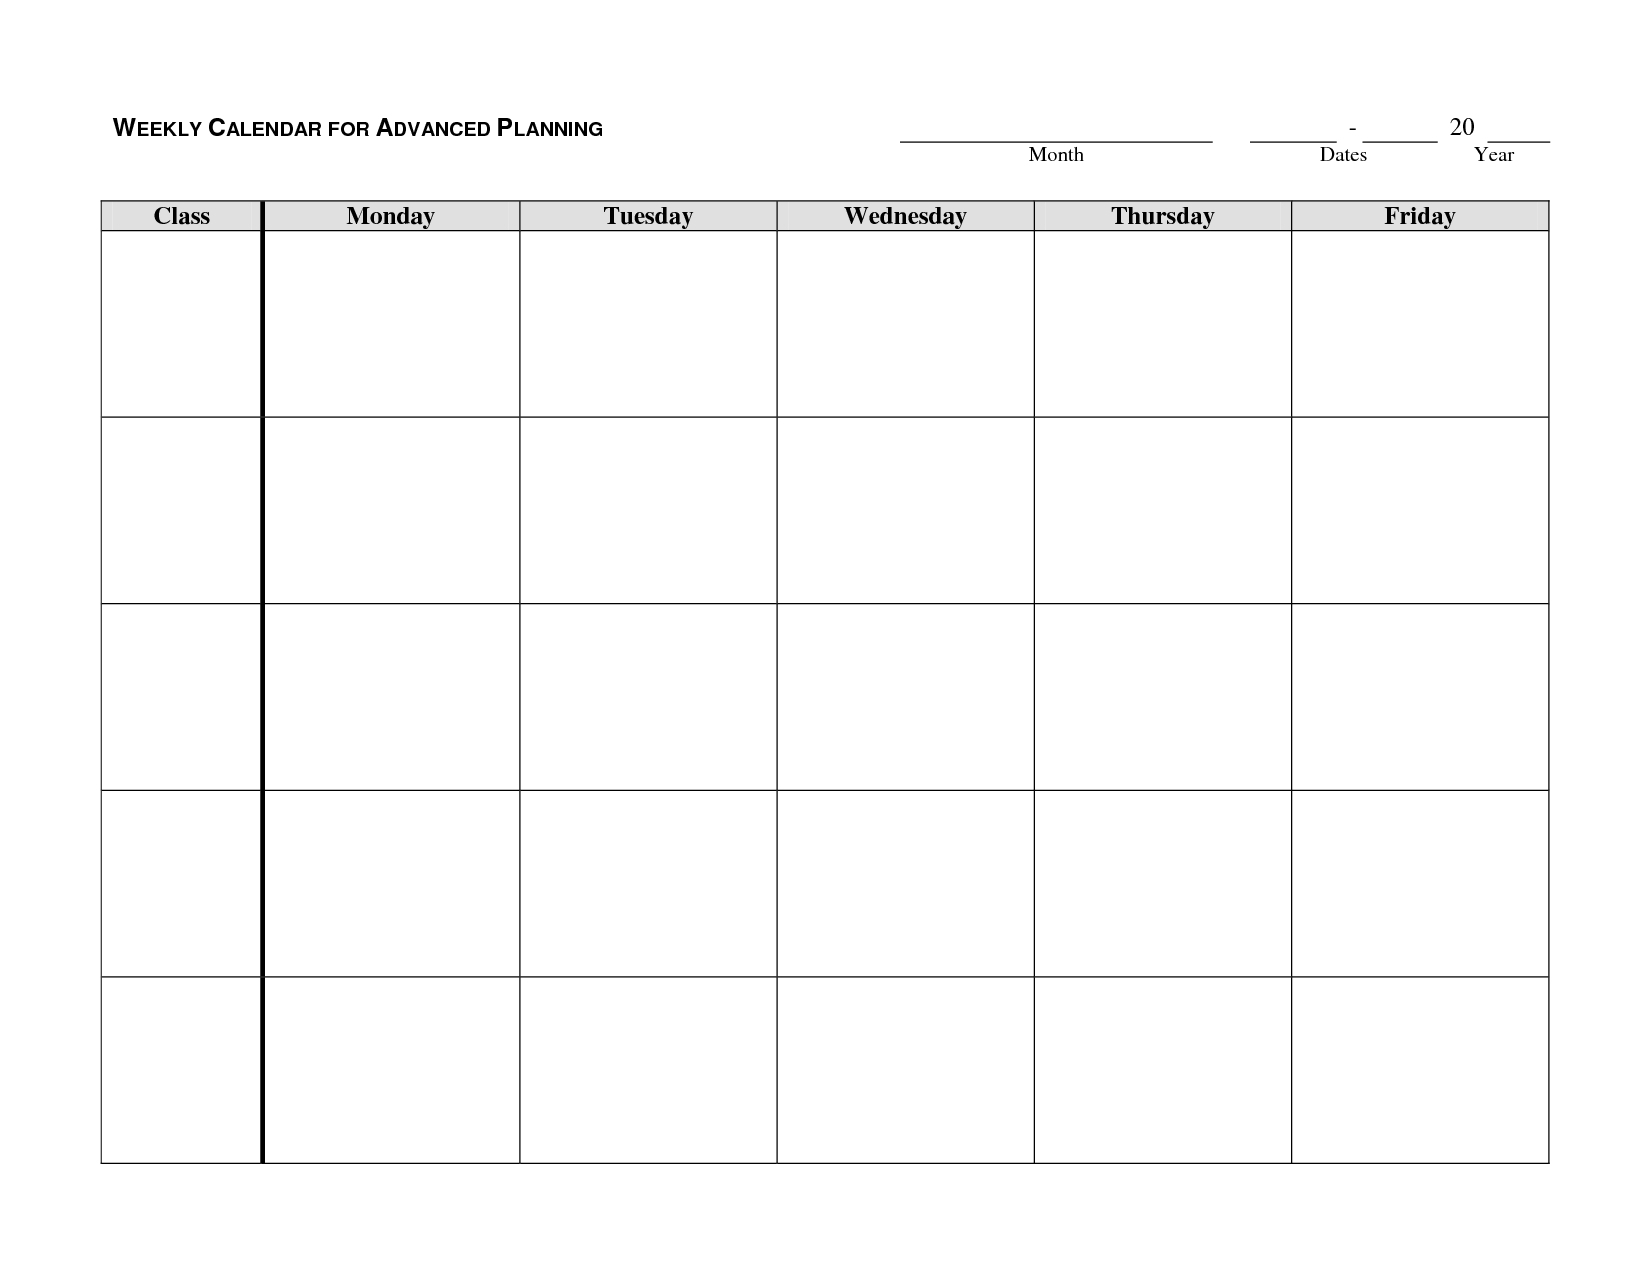 Weekly Schedule Monday Through Friday | Template Calendar Printable pertaining to Monday Through Friday Schedule Template